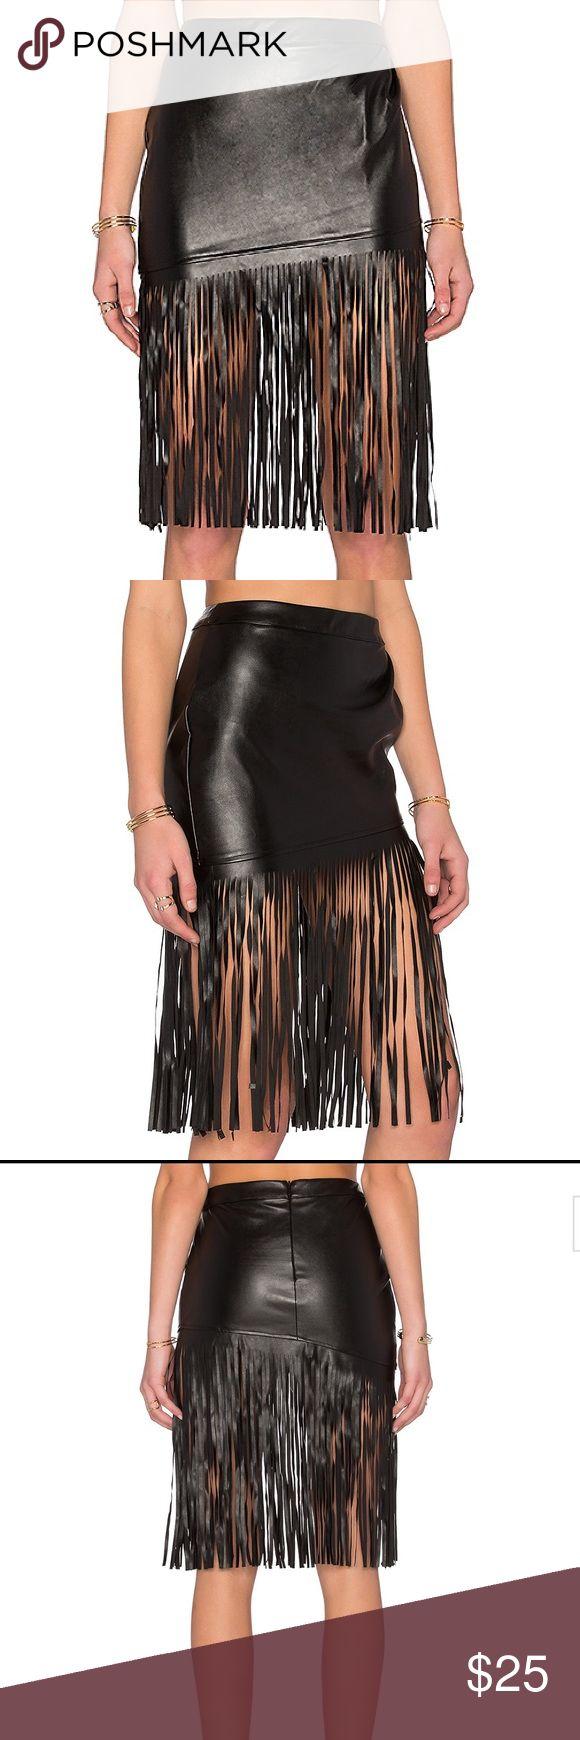 """Angled Leatherette Midi Skirt - Toby Heart Ginger Pleat detail, skirt approx 13"""" in length, fringe approx 25"""" in length, hidden back zipper, 100% poly, WORN ONCE & CURRENTLY OUT OF STOCK Skirts Midi"""